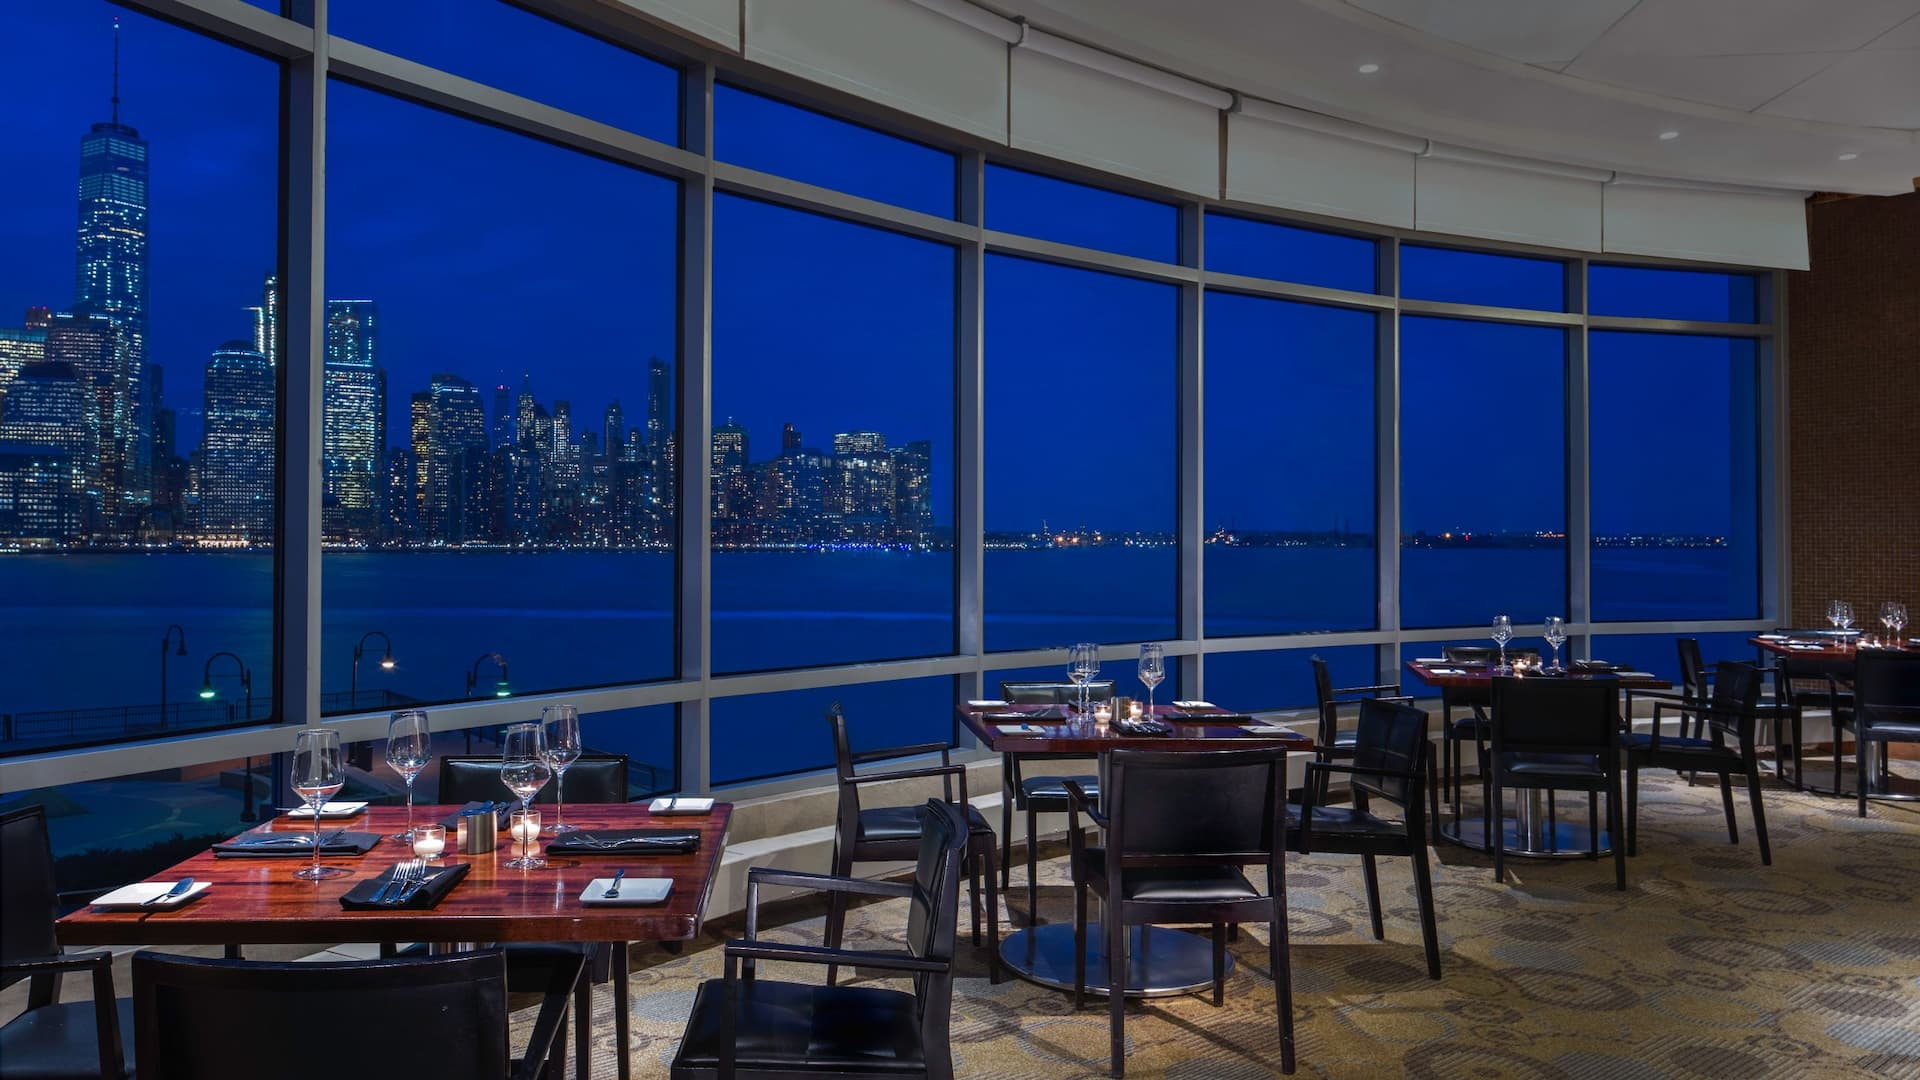 Upscale Jersey City restaurant with a view of the Hudson River and NYC skyline